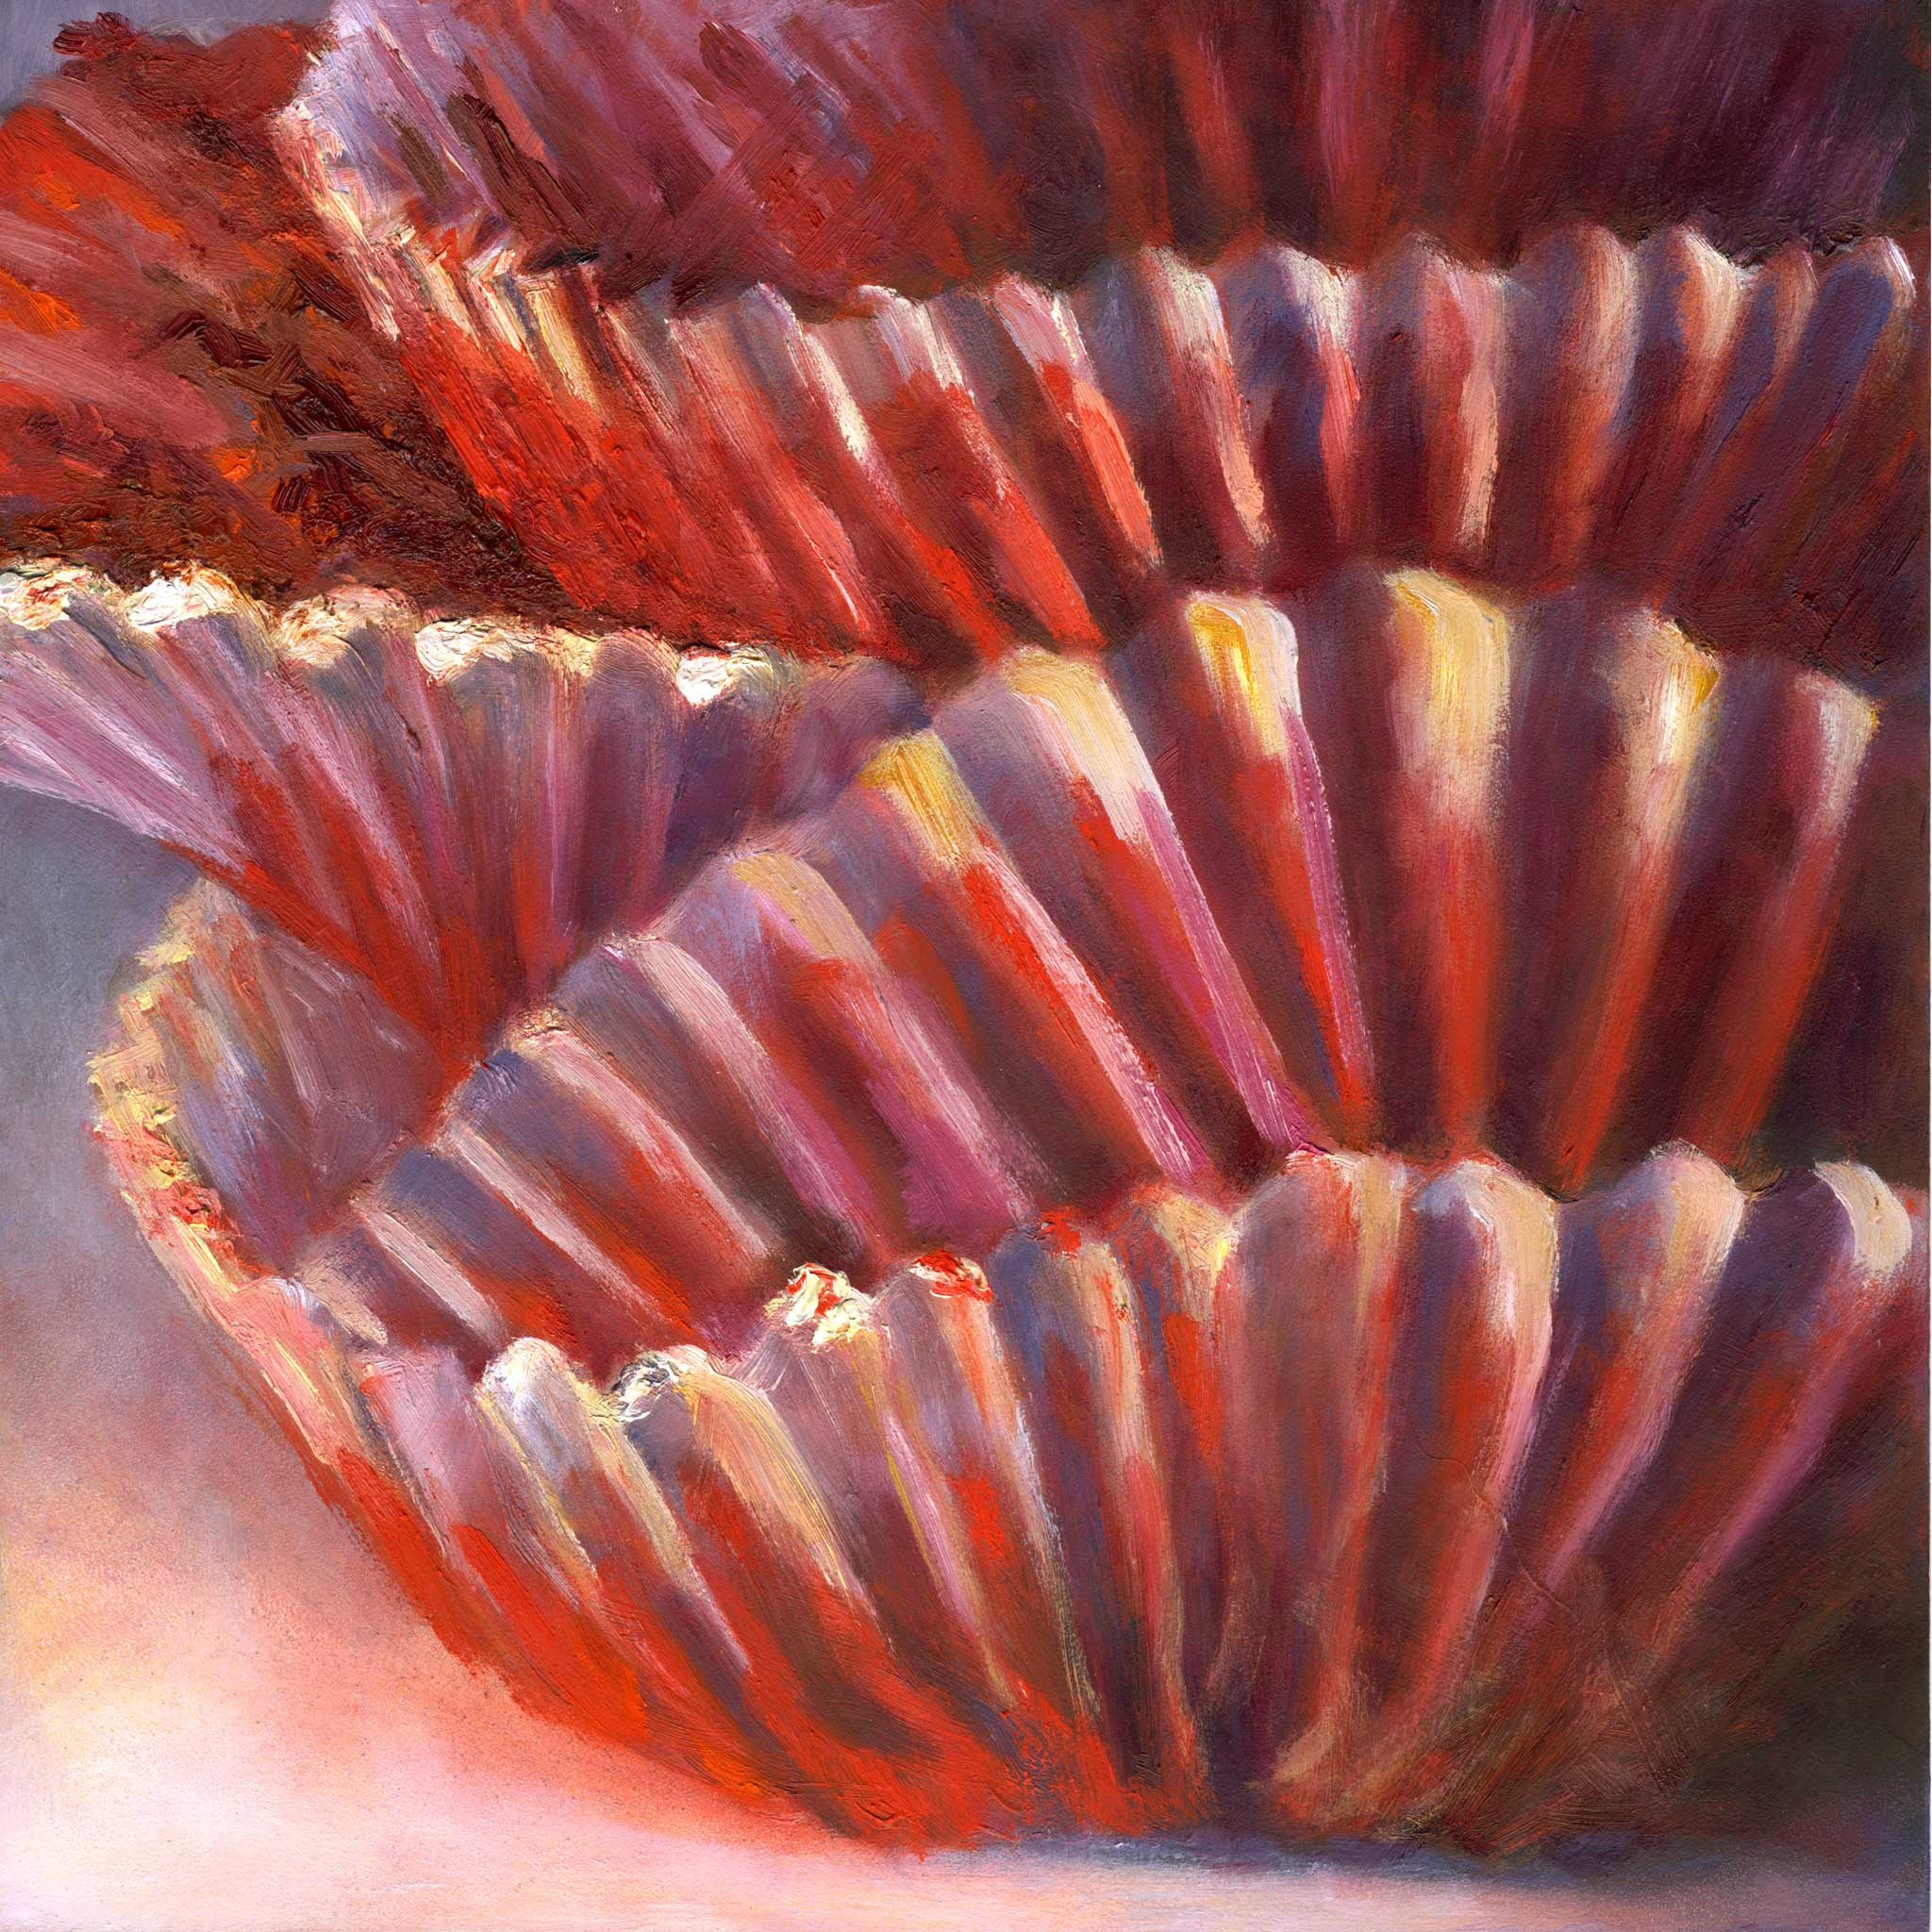 Red Velvet Ruffles - Cupcake Art Print - Galleria Fresco - food still life by Jo Bradney